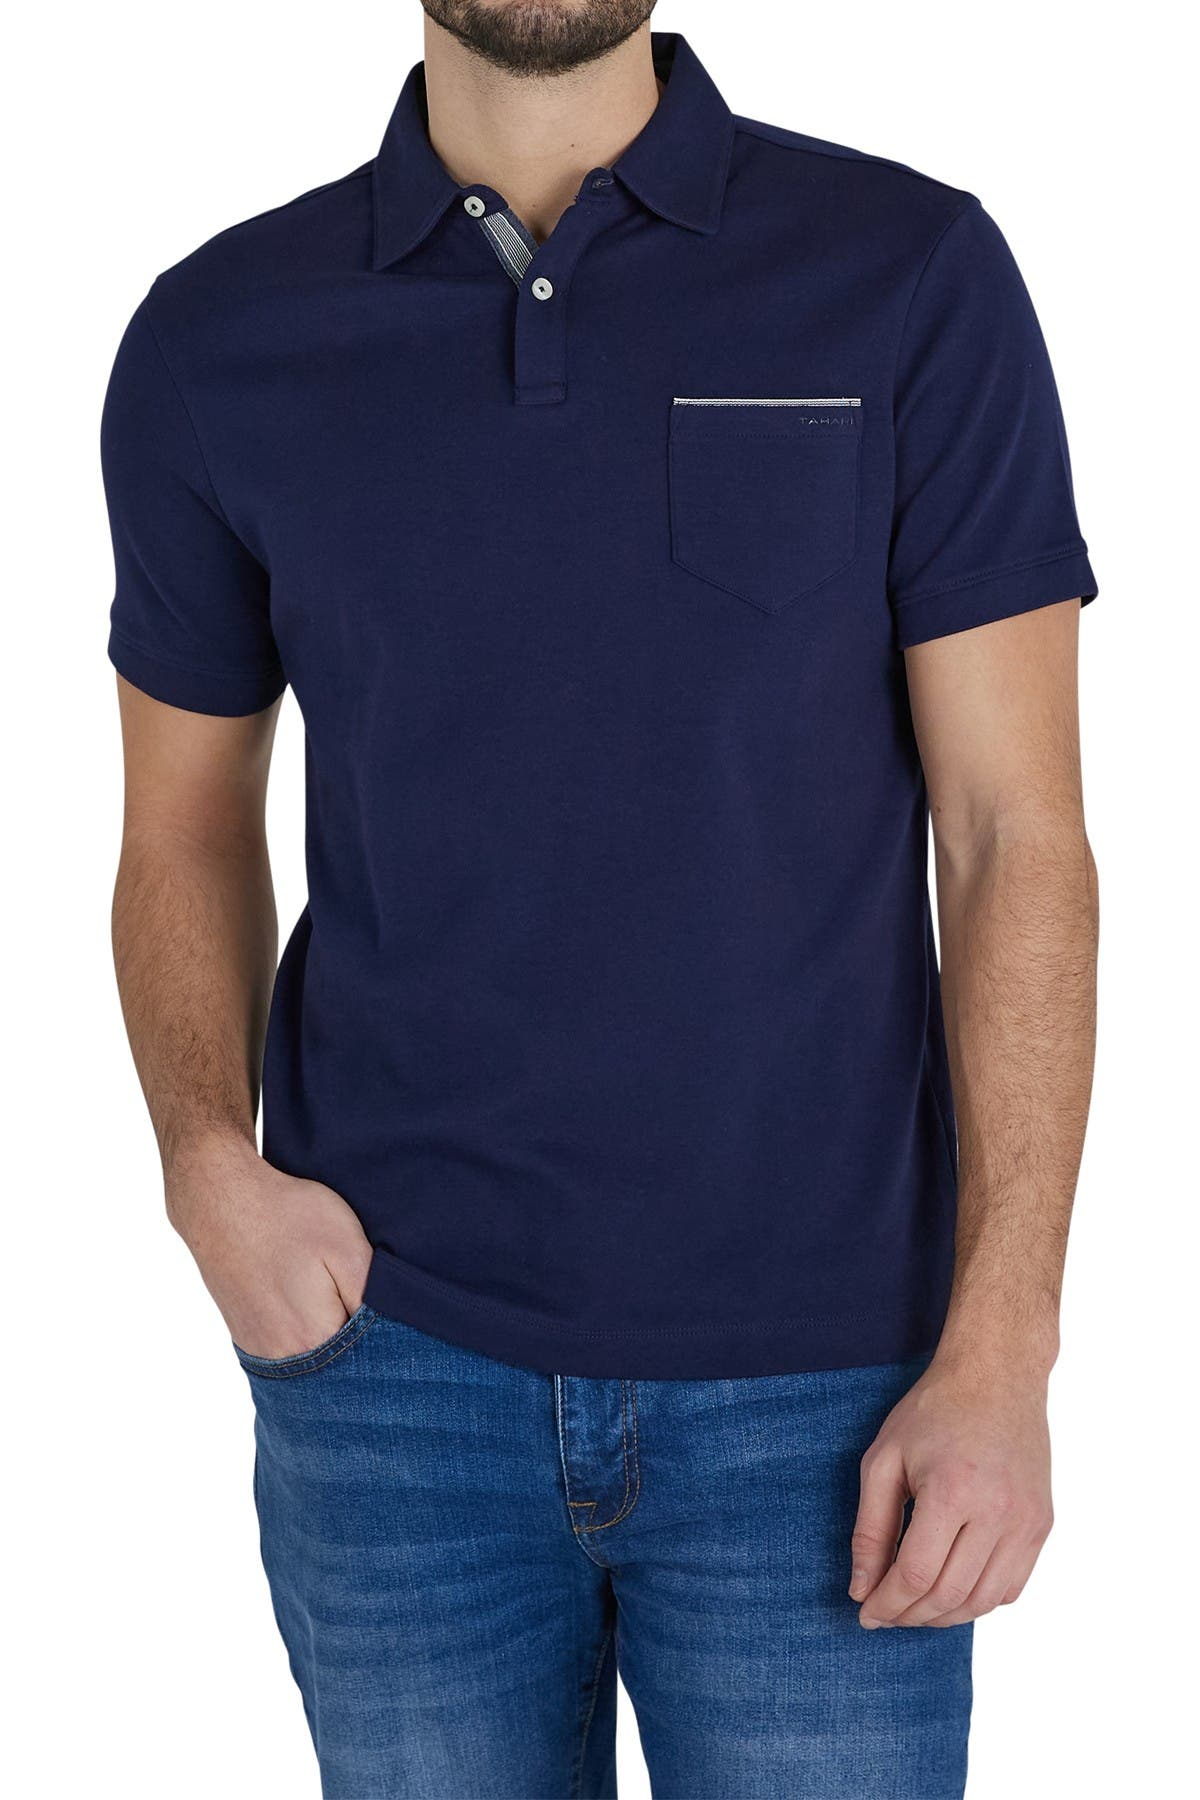 Image of Tahari Updated Interlock Polo Shirt